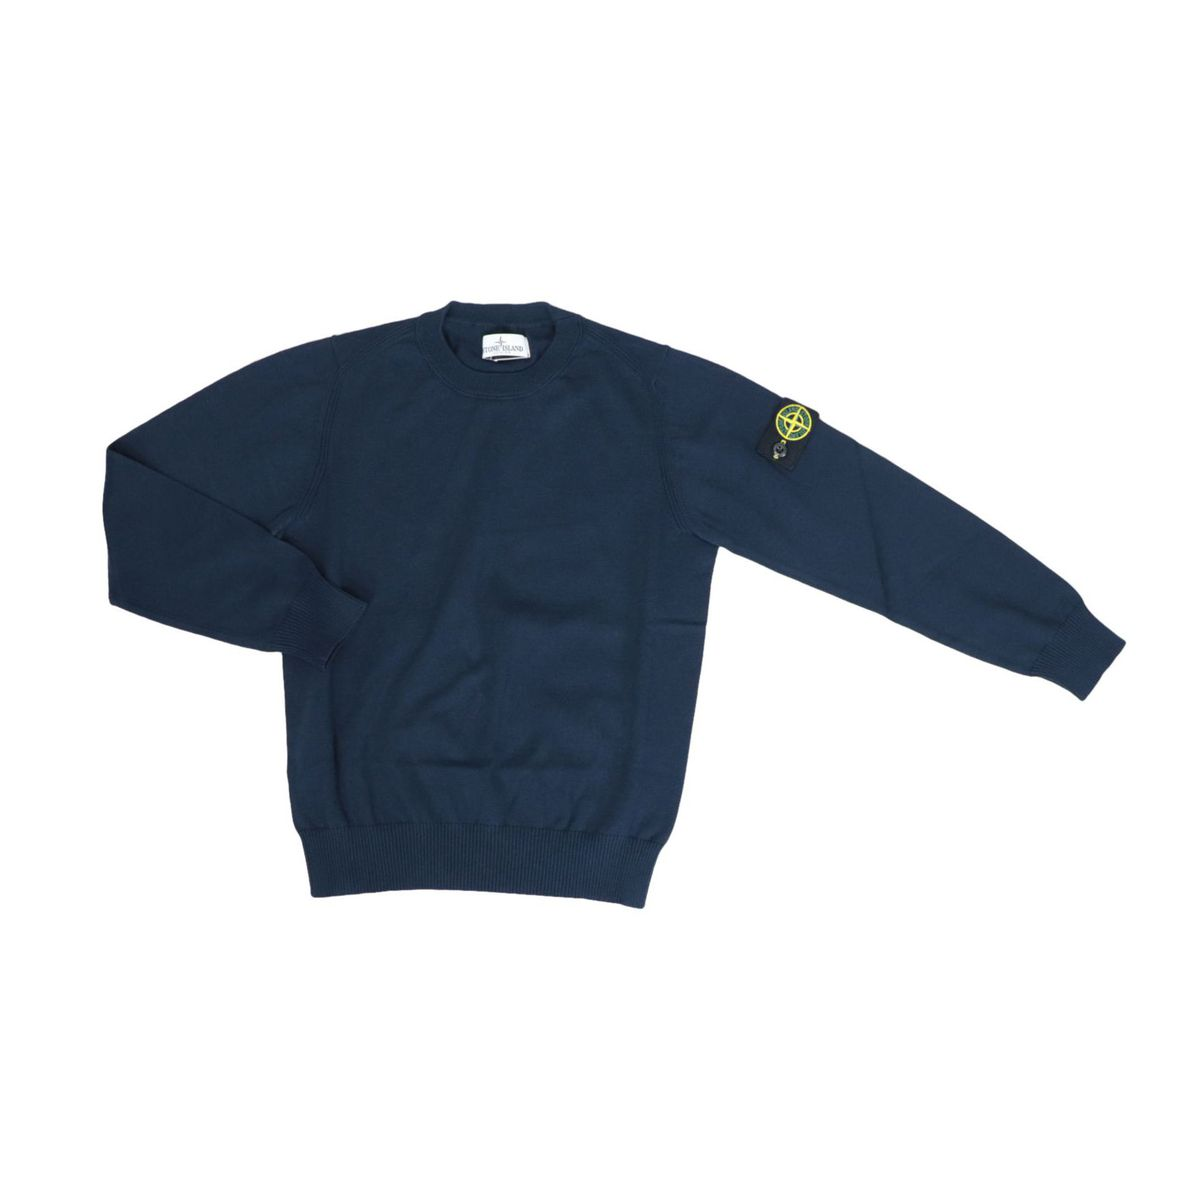 Crew neck cotton sweater with logo patch and ribbed profiles Blue STONE ISLAND JUNIOR